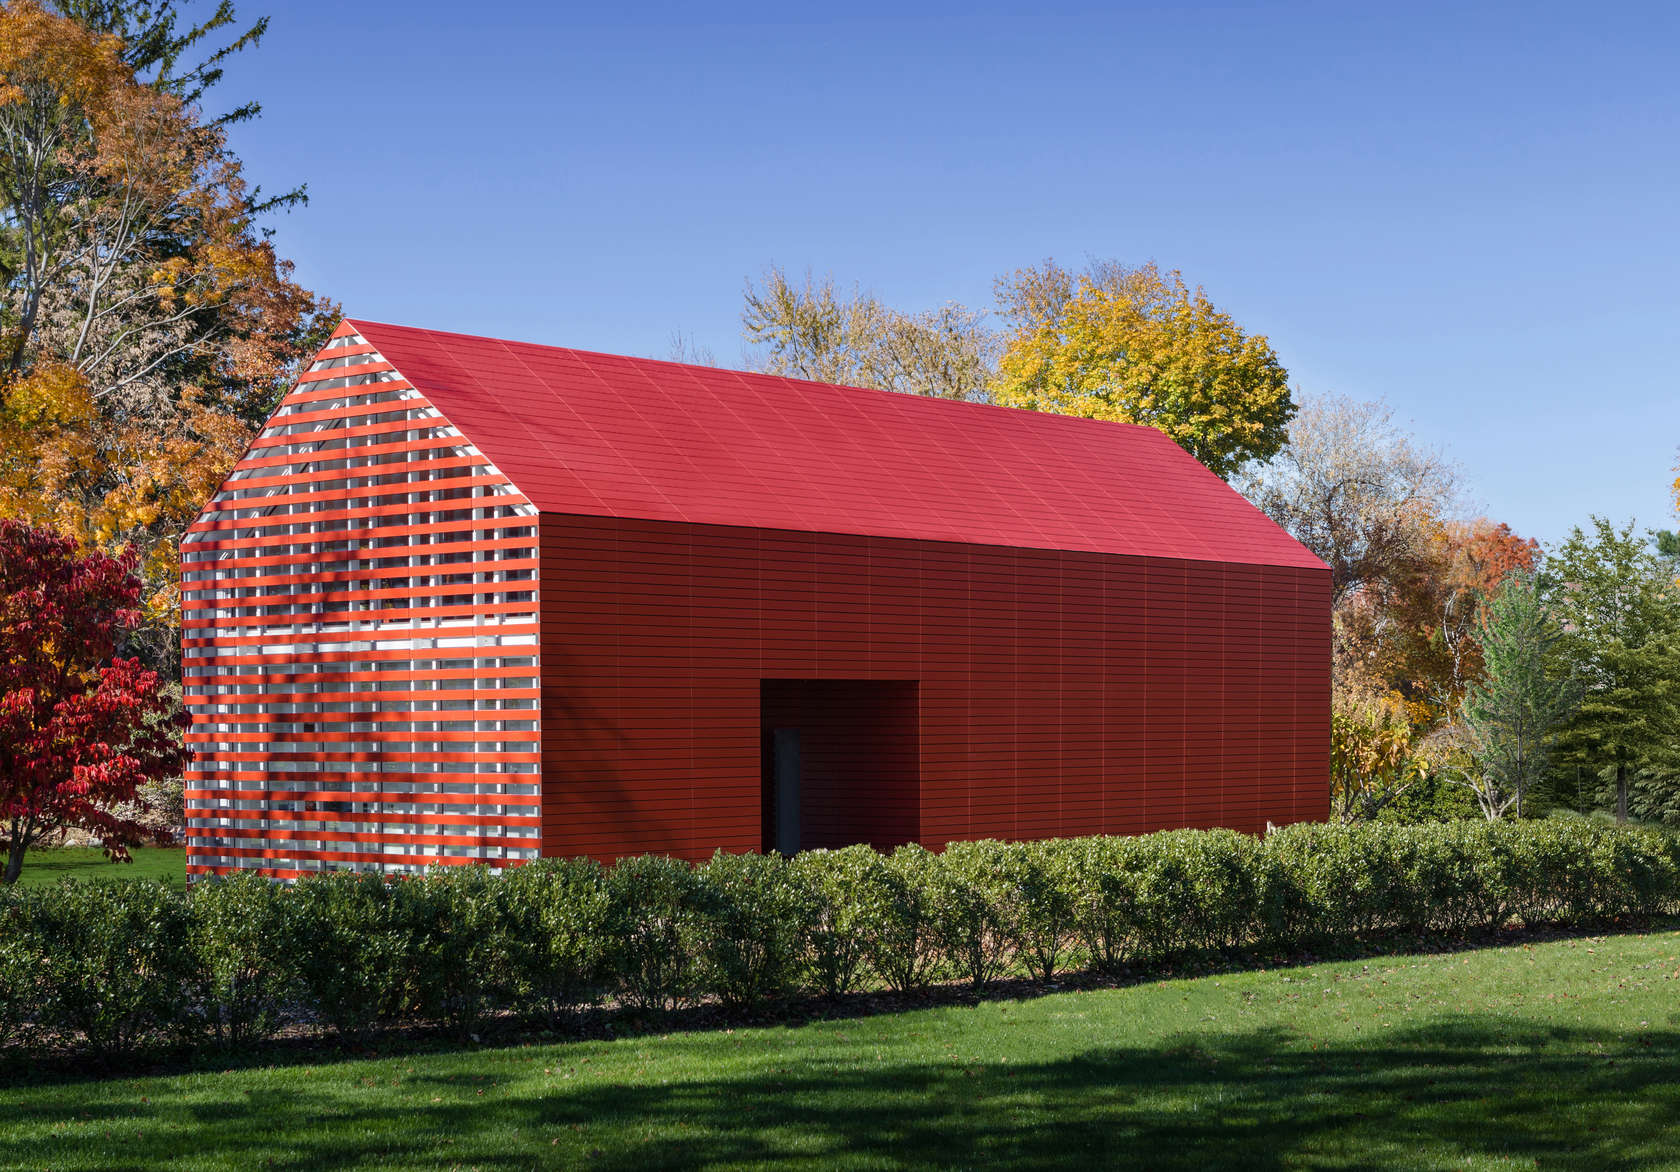 View of Red Barn designed by Roger Ferris + Partners